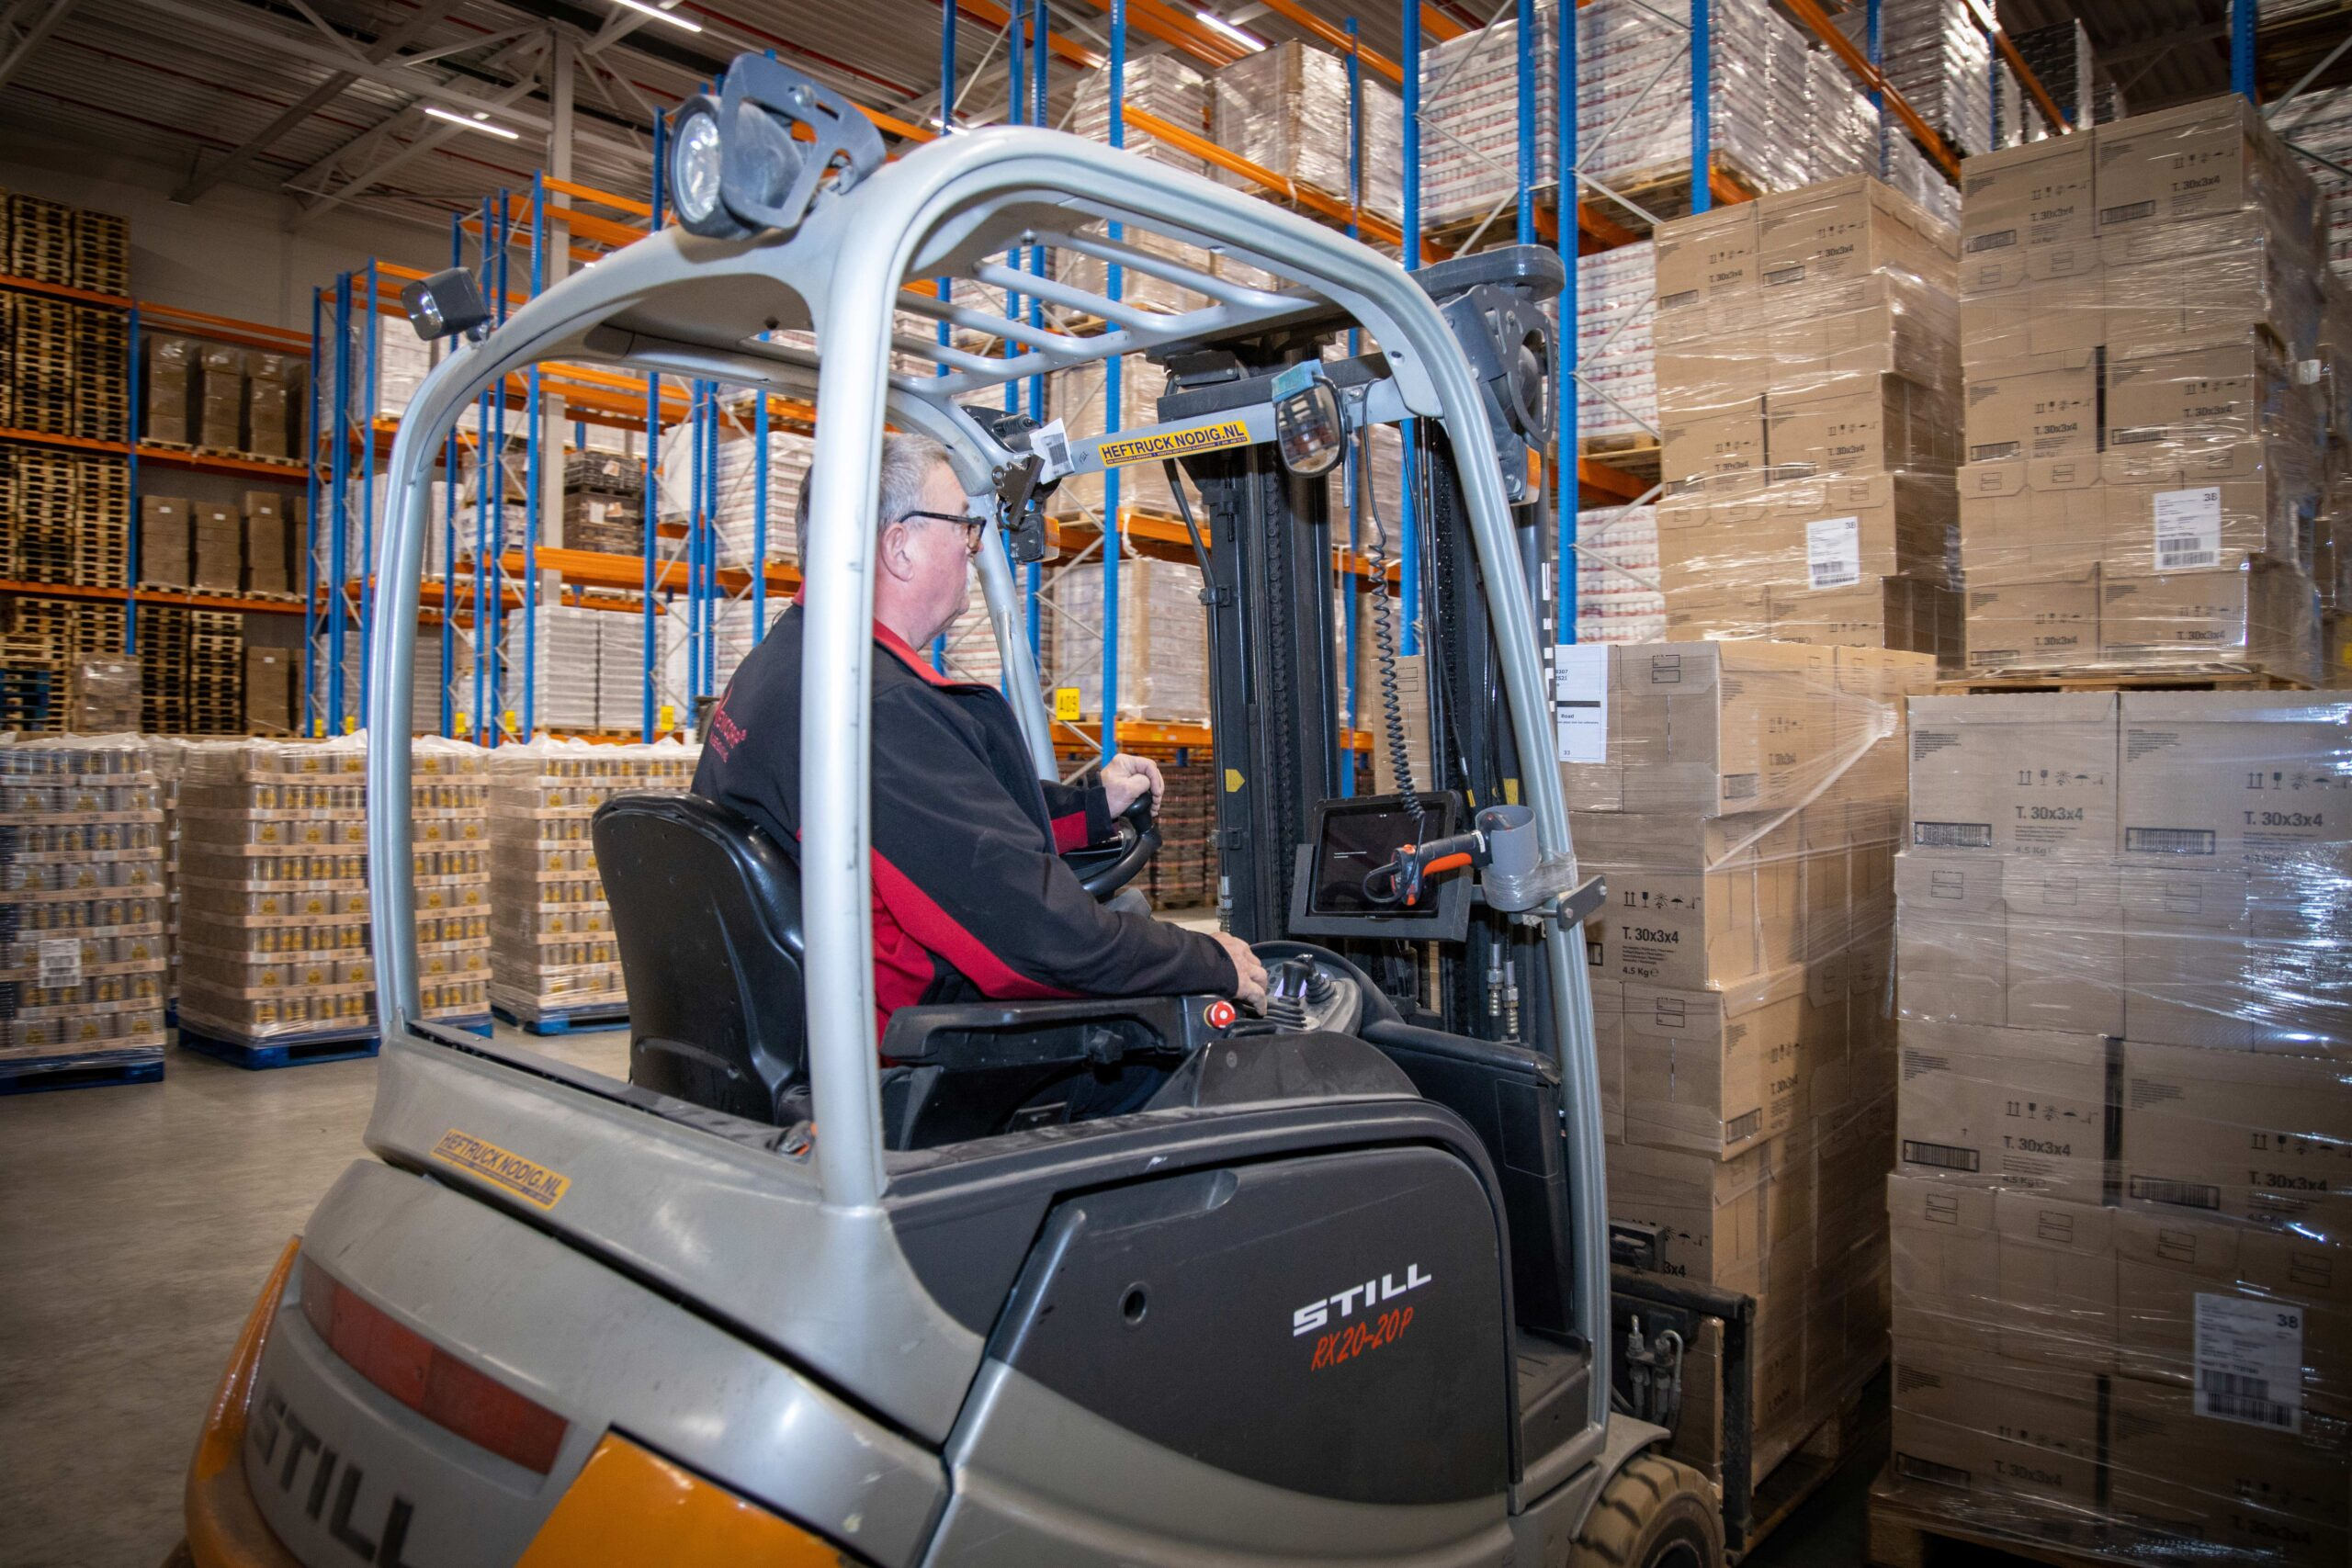 How do you select the right partner for multi-channel order fulfilment?